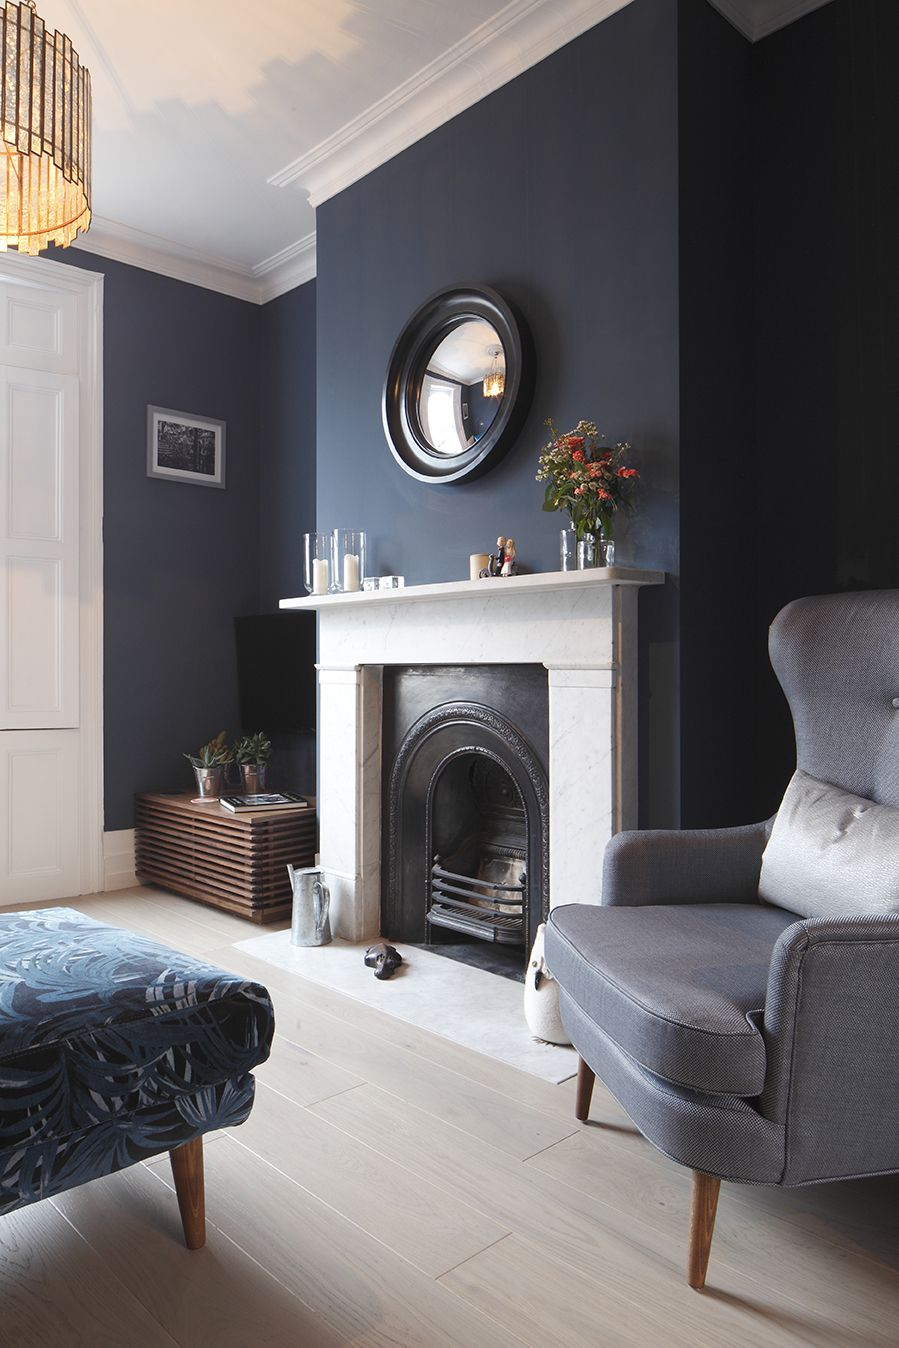 welcome to our design blog with interior design tips and advice for